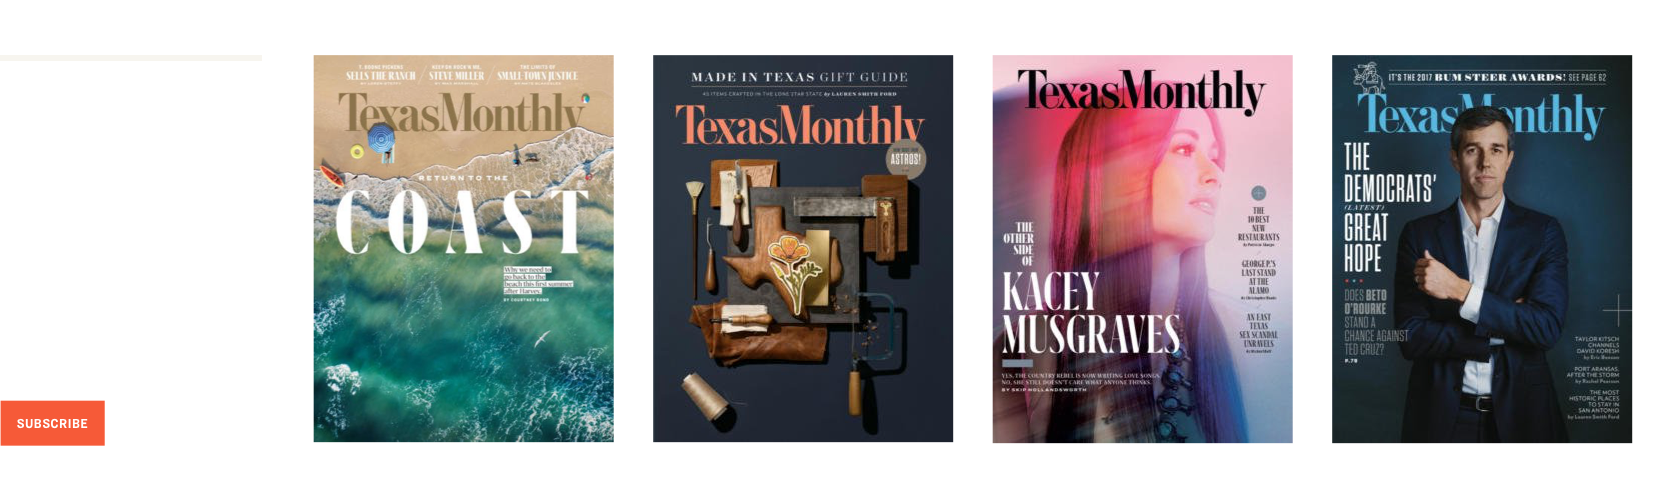 Subscribe Today with Texas Monthly magazine covers